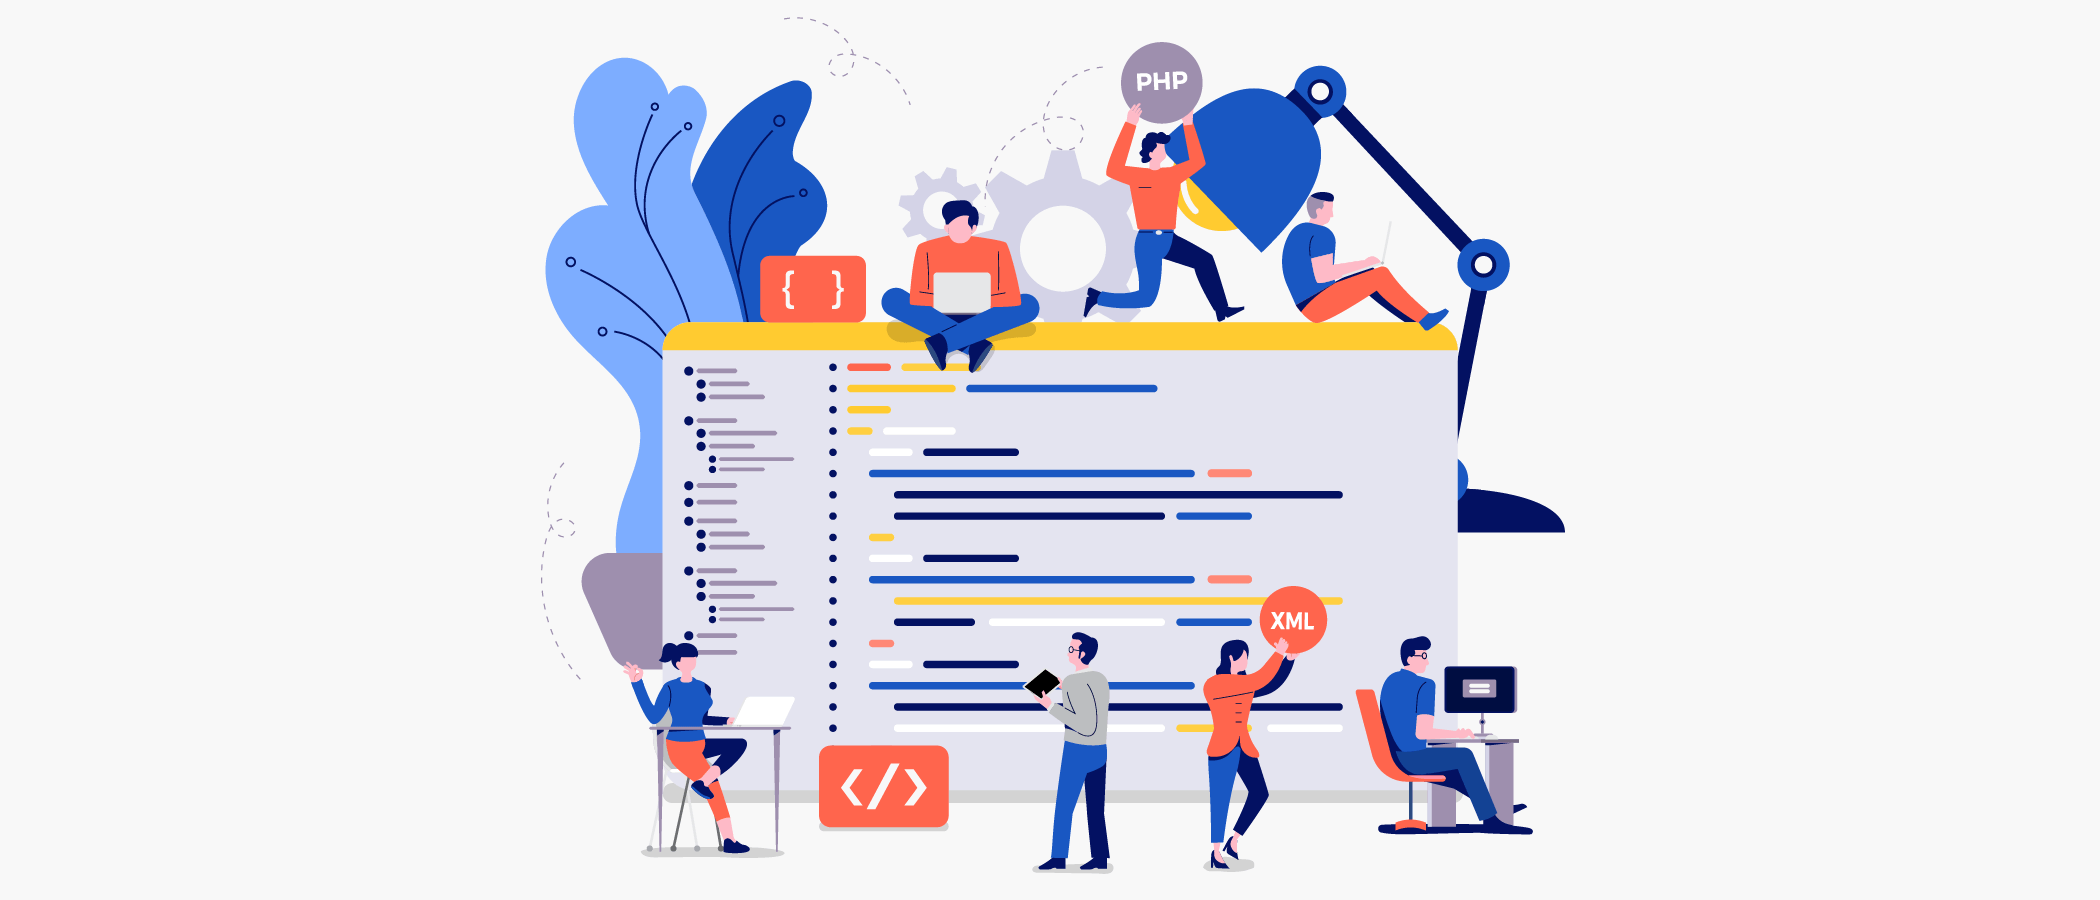 API testing is great, so why isn't everyone doing it?